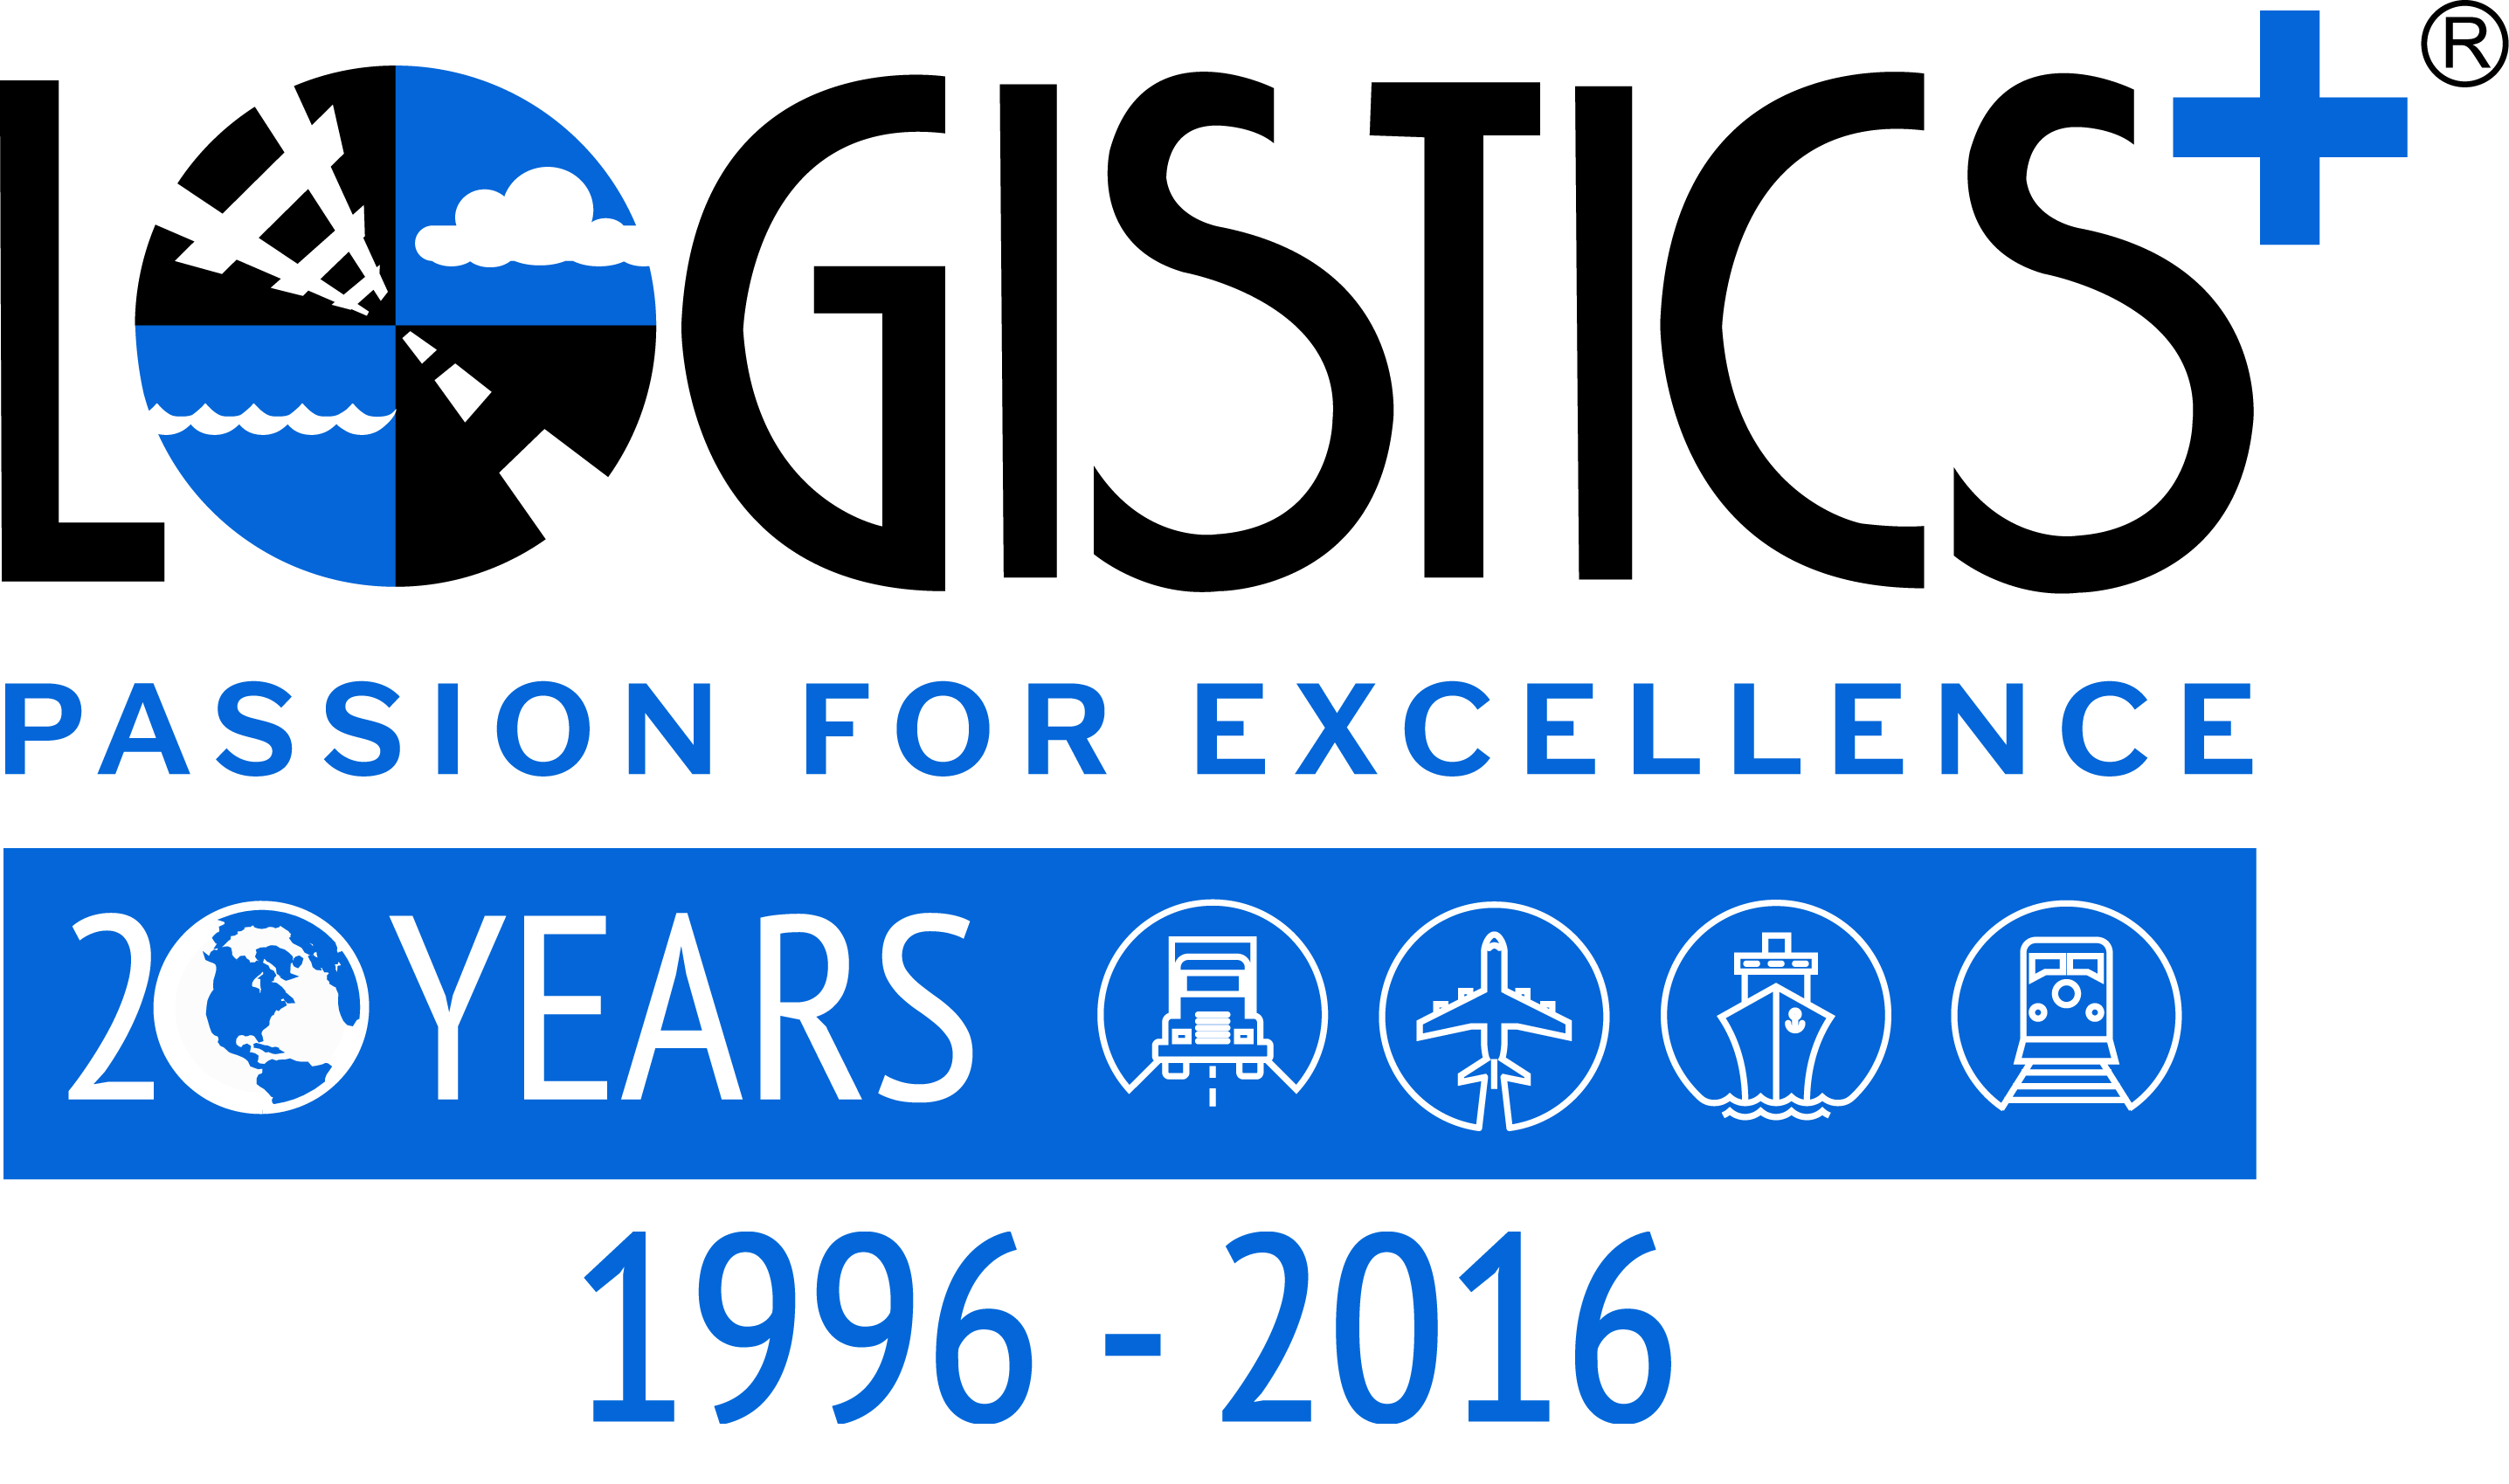 LP-Logo-with-20-Years-1996-2016